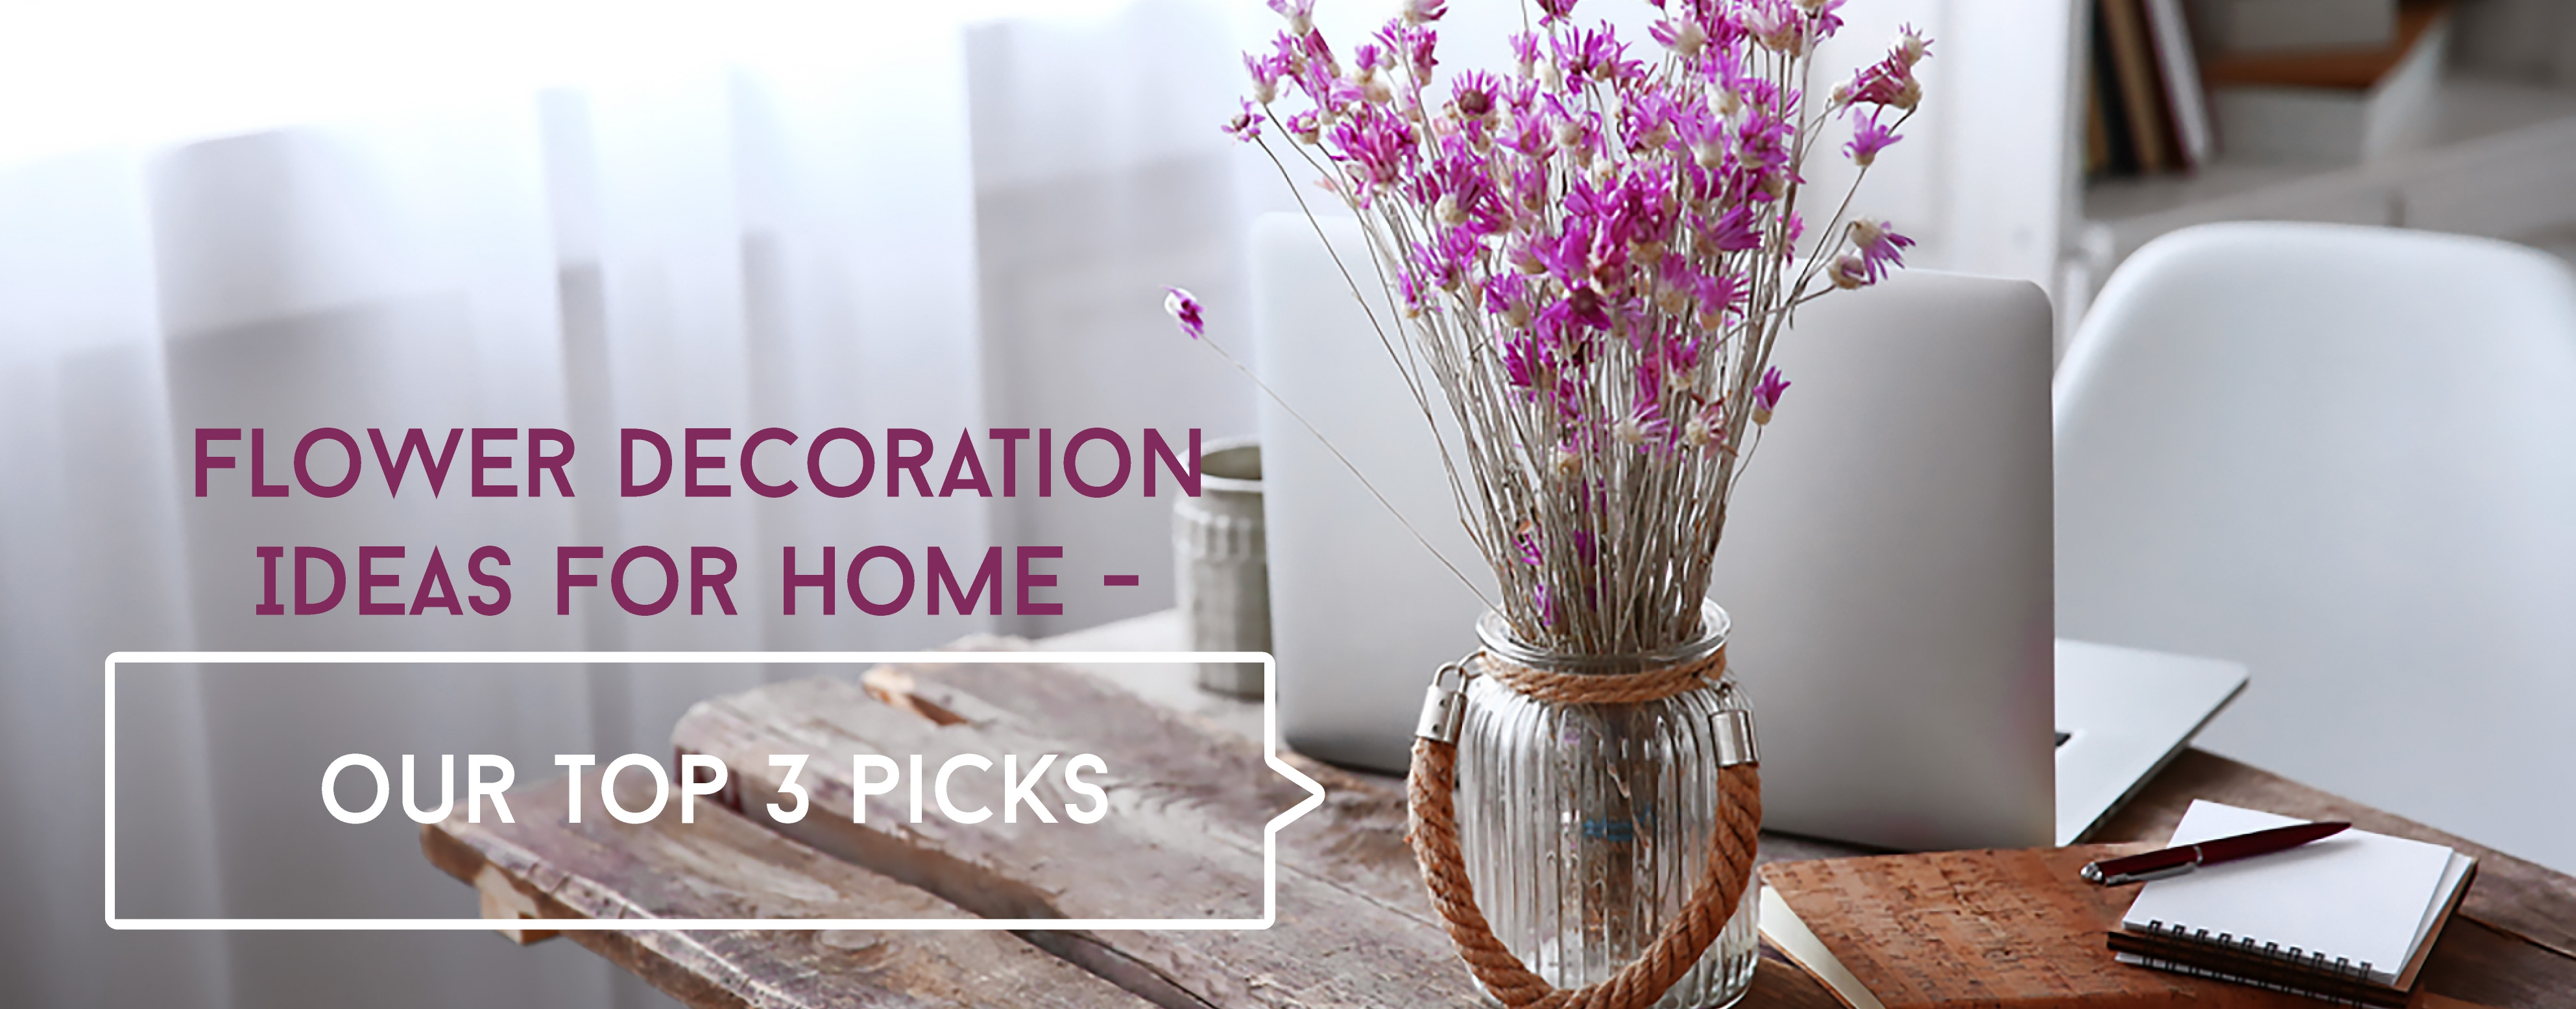 HFlower Decoration Ideas for home – Our top 3 picks